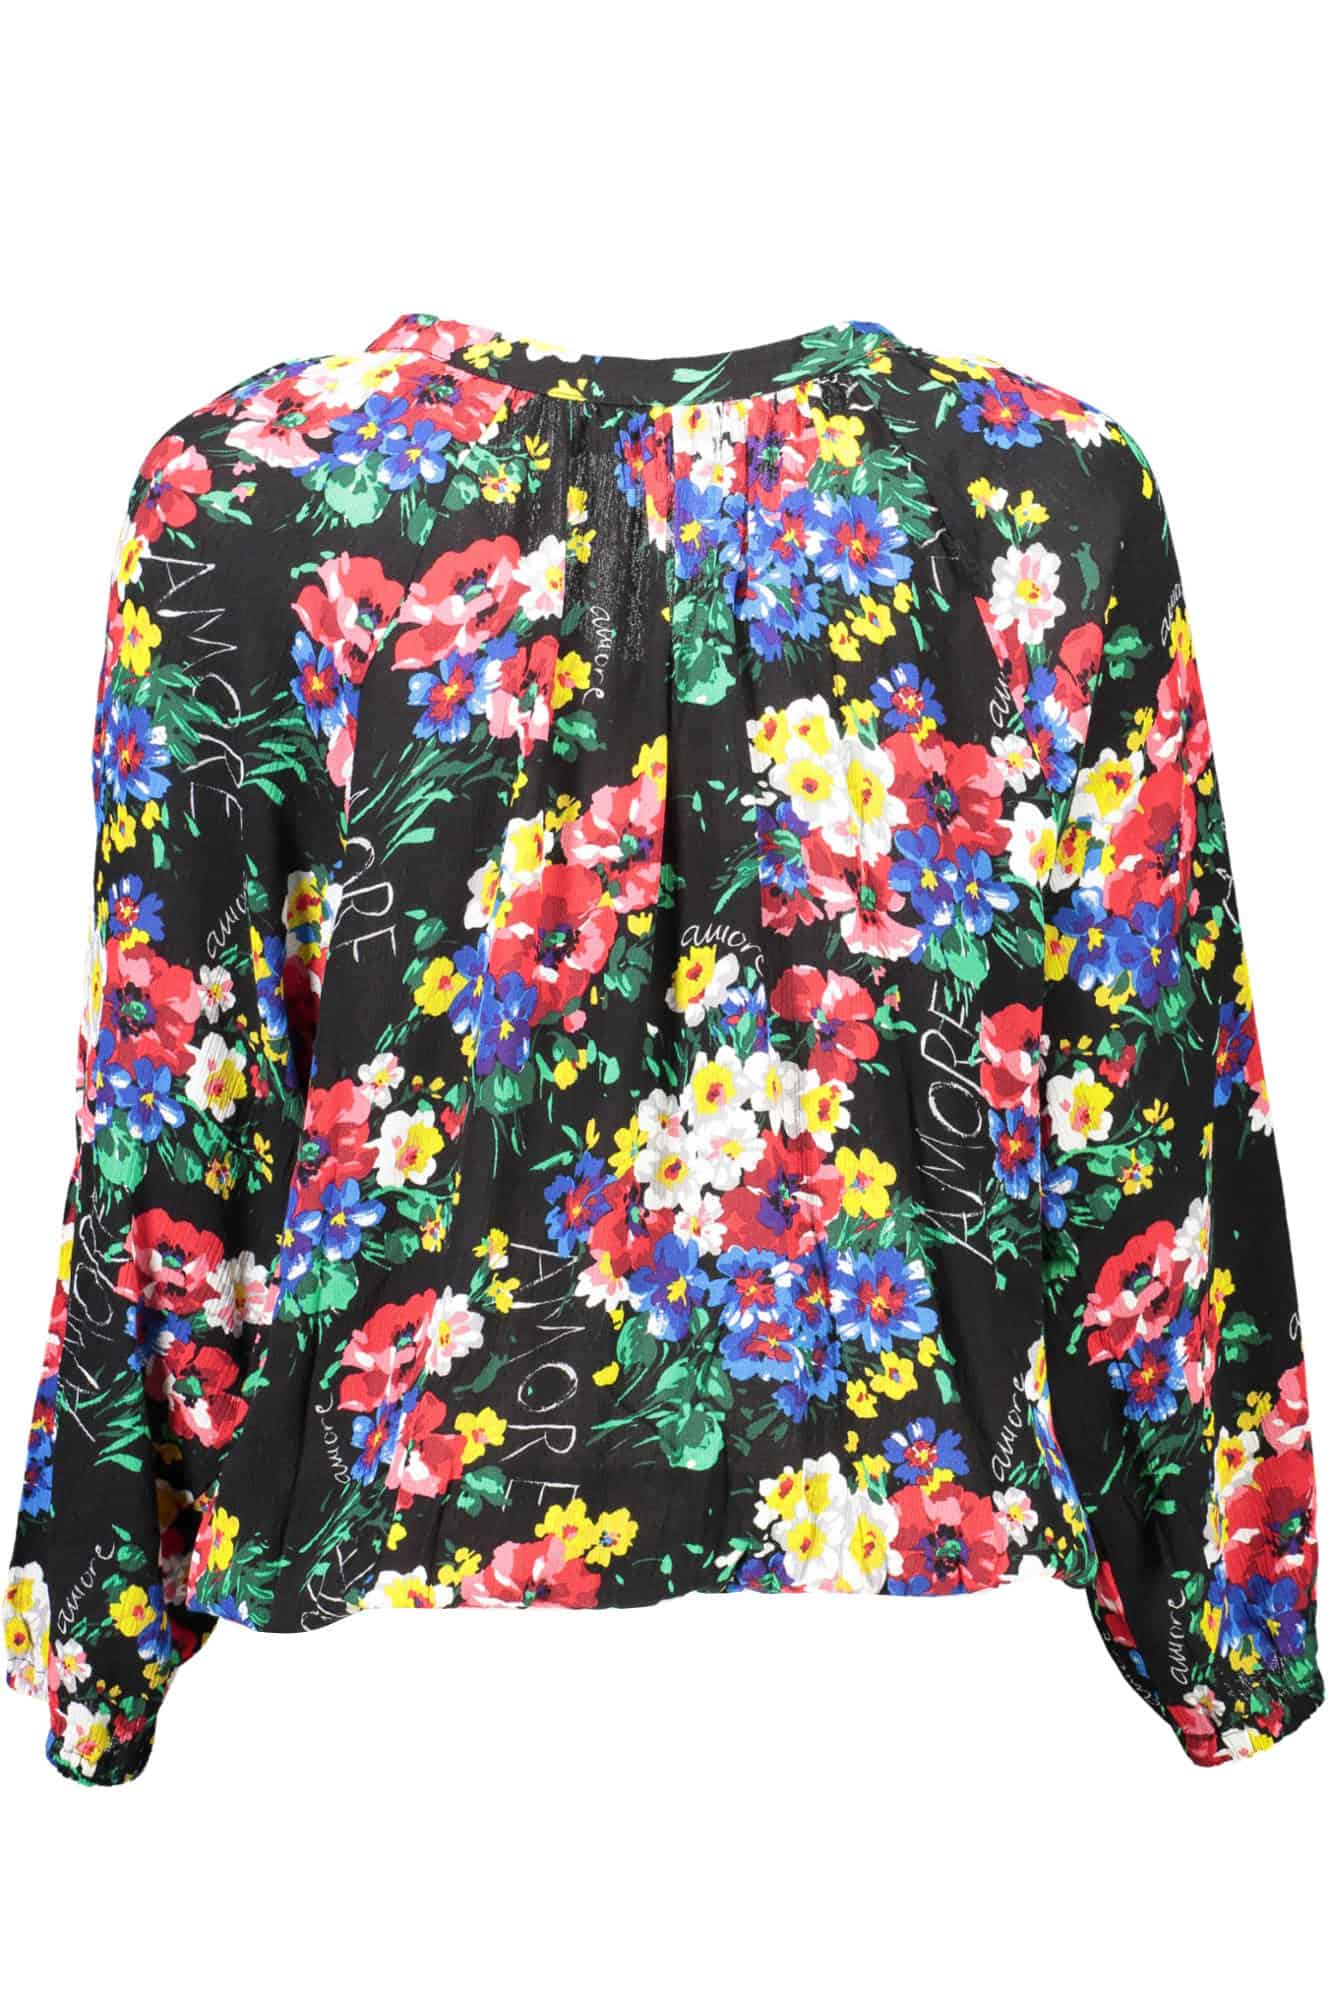 Private: DESIGUAL T-shirt long sleeves Women